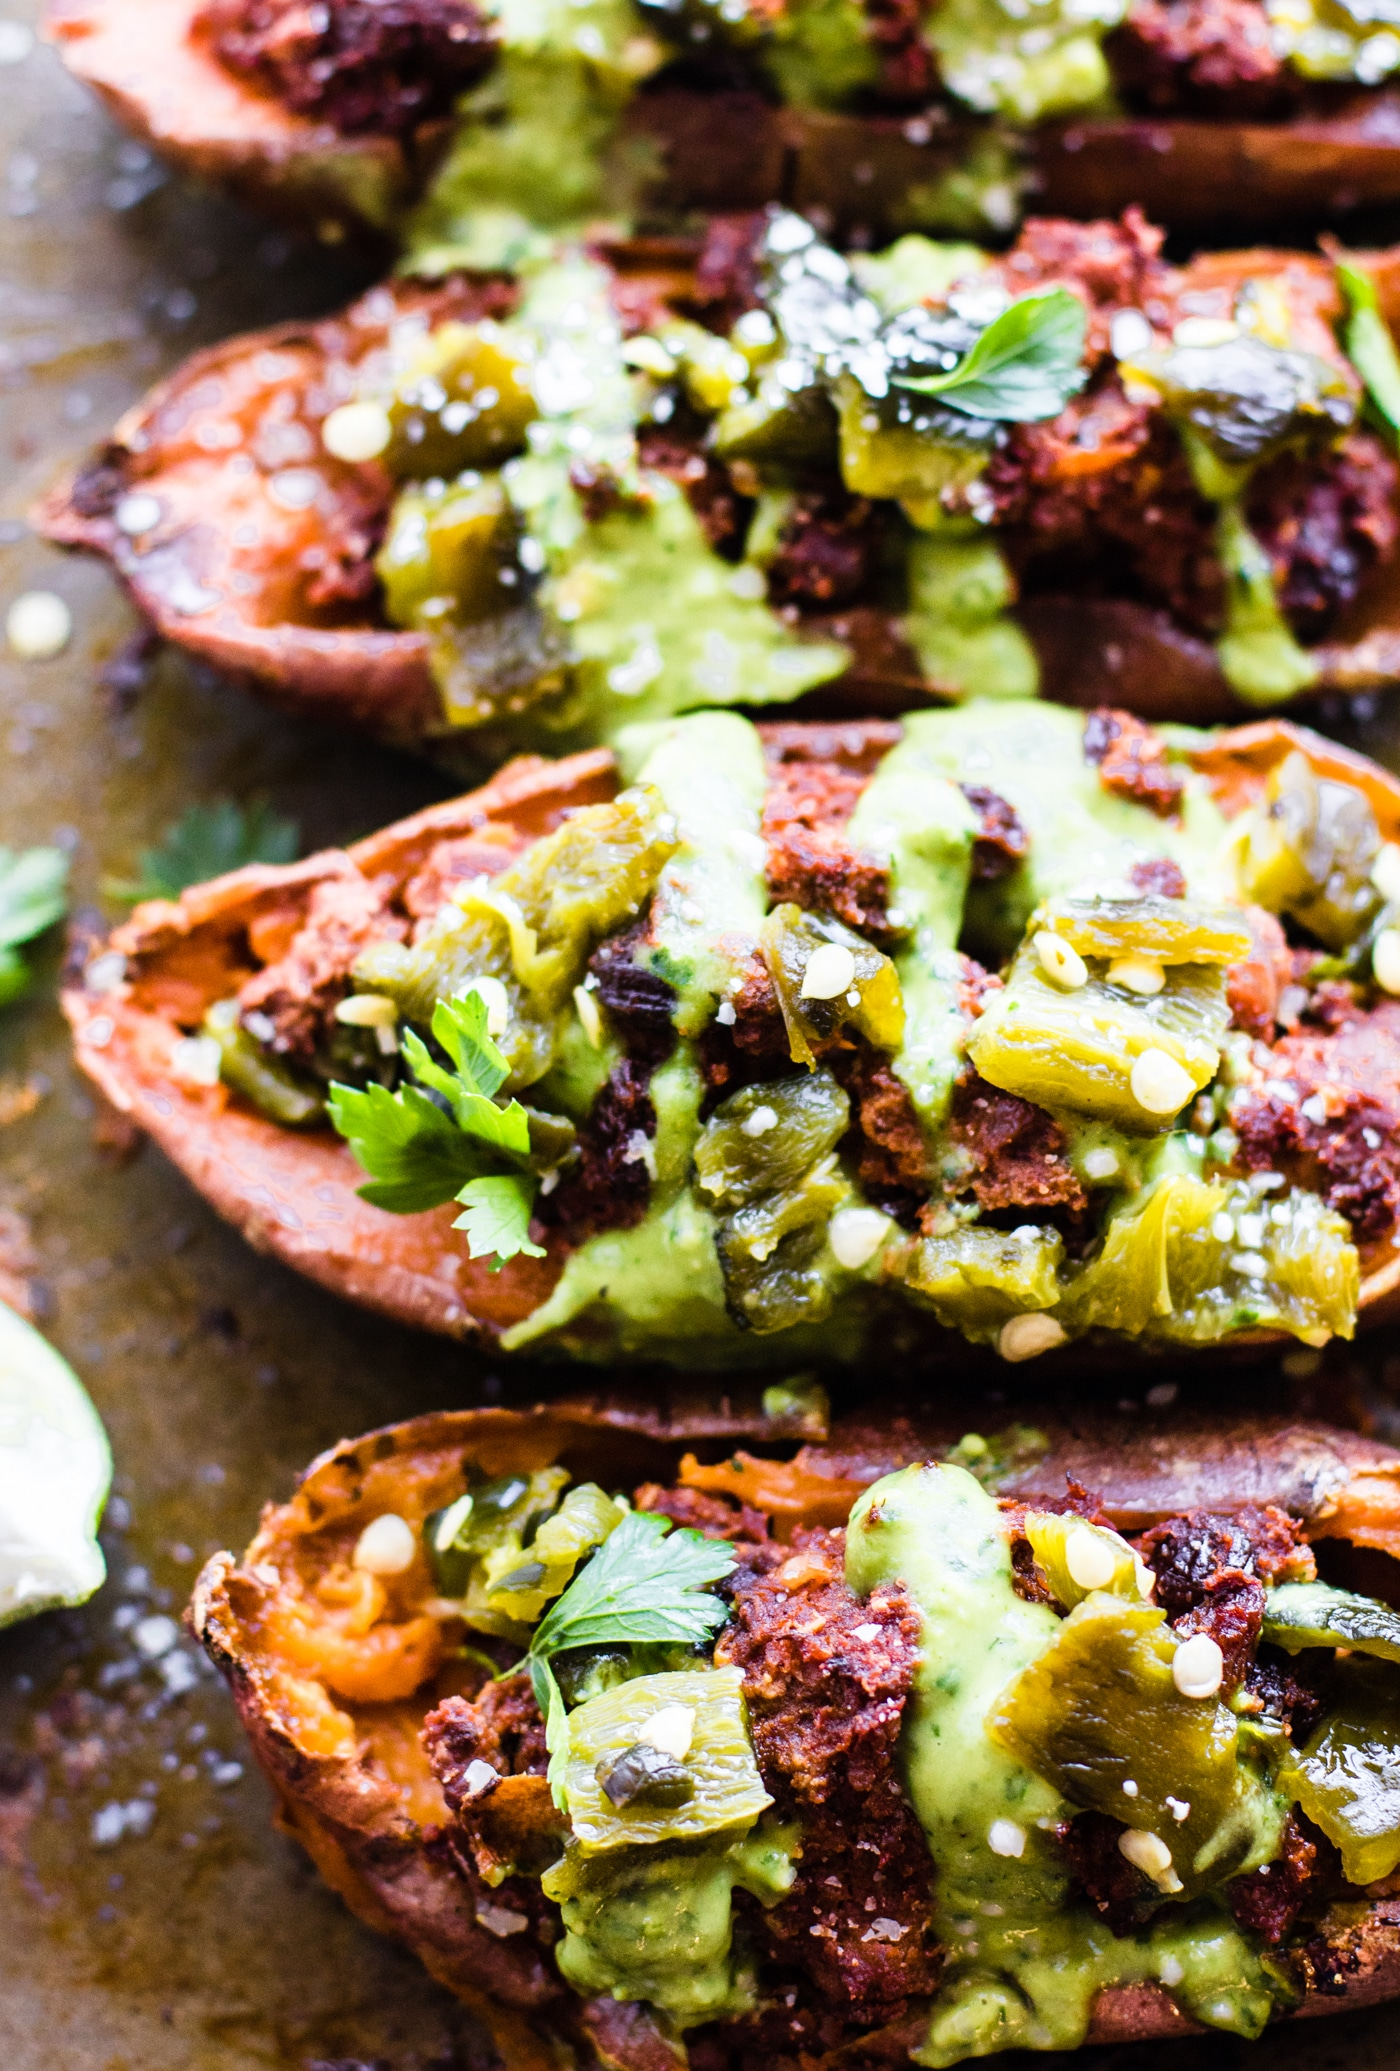 Ancho Beef Chili stuffed & baked into Sweet Potato Skins for an easy Paleo appetizer or meal! Healthy Ancho Beef Chili sweet potato skins to feed a crowd.